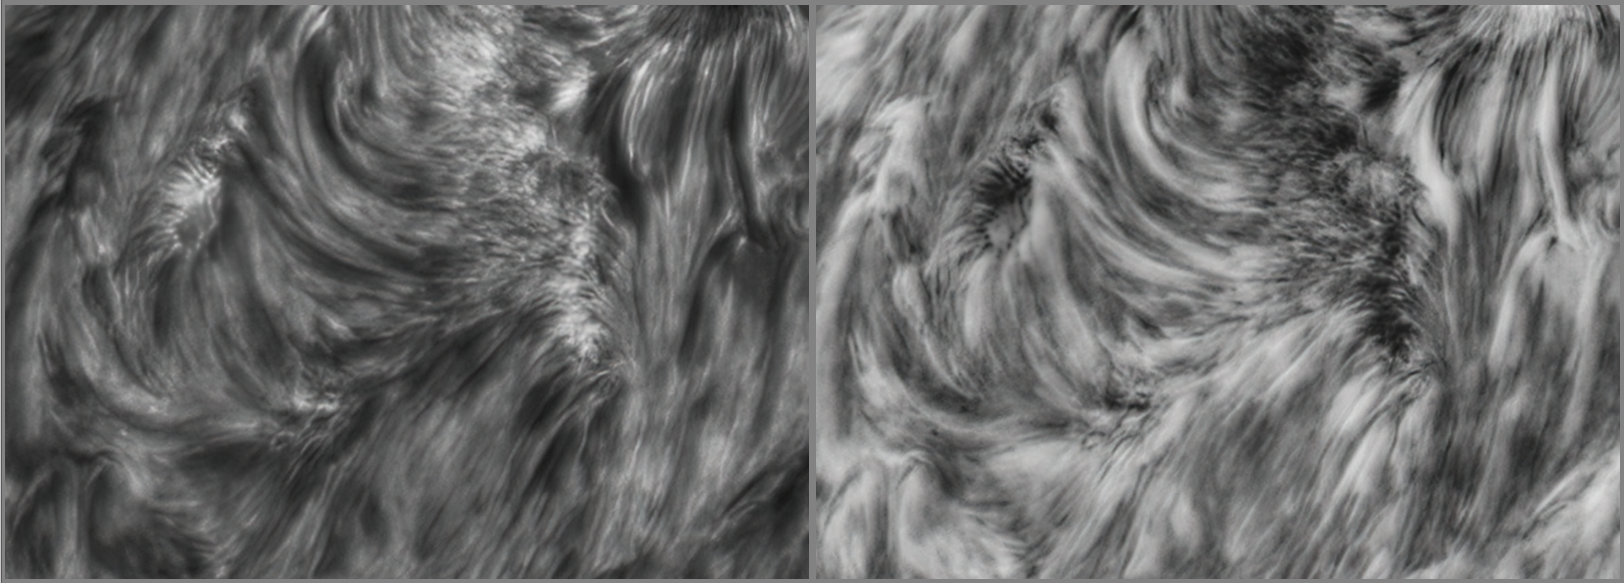 AR2824 Detail 4.png